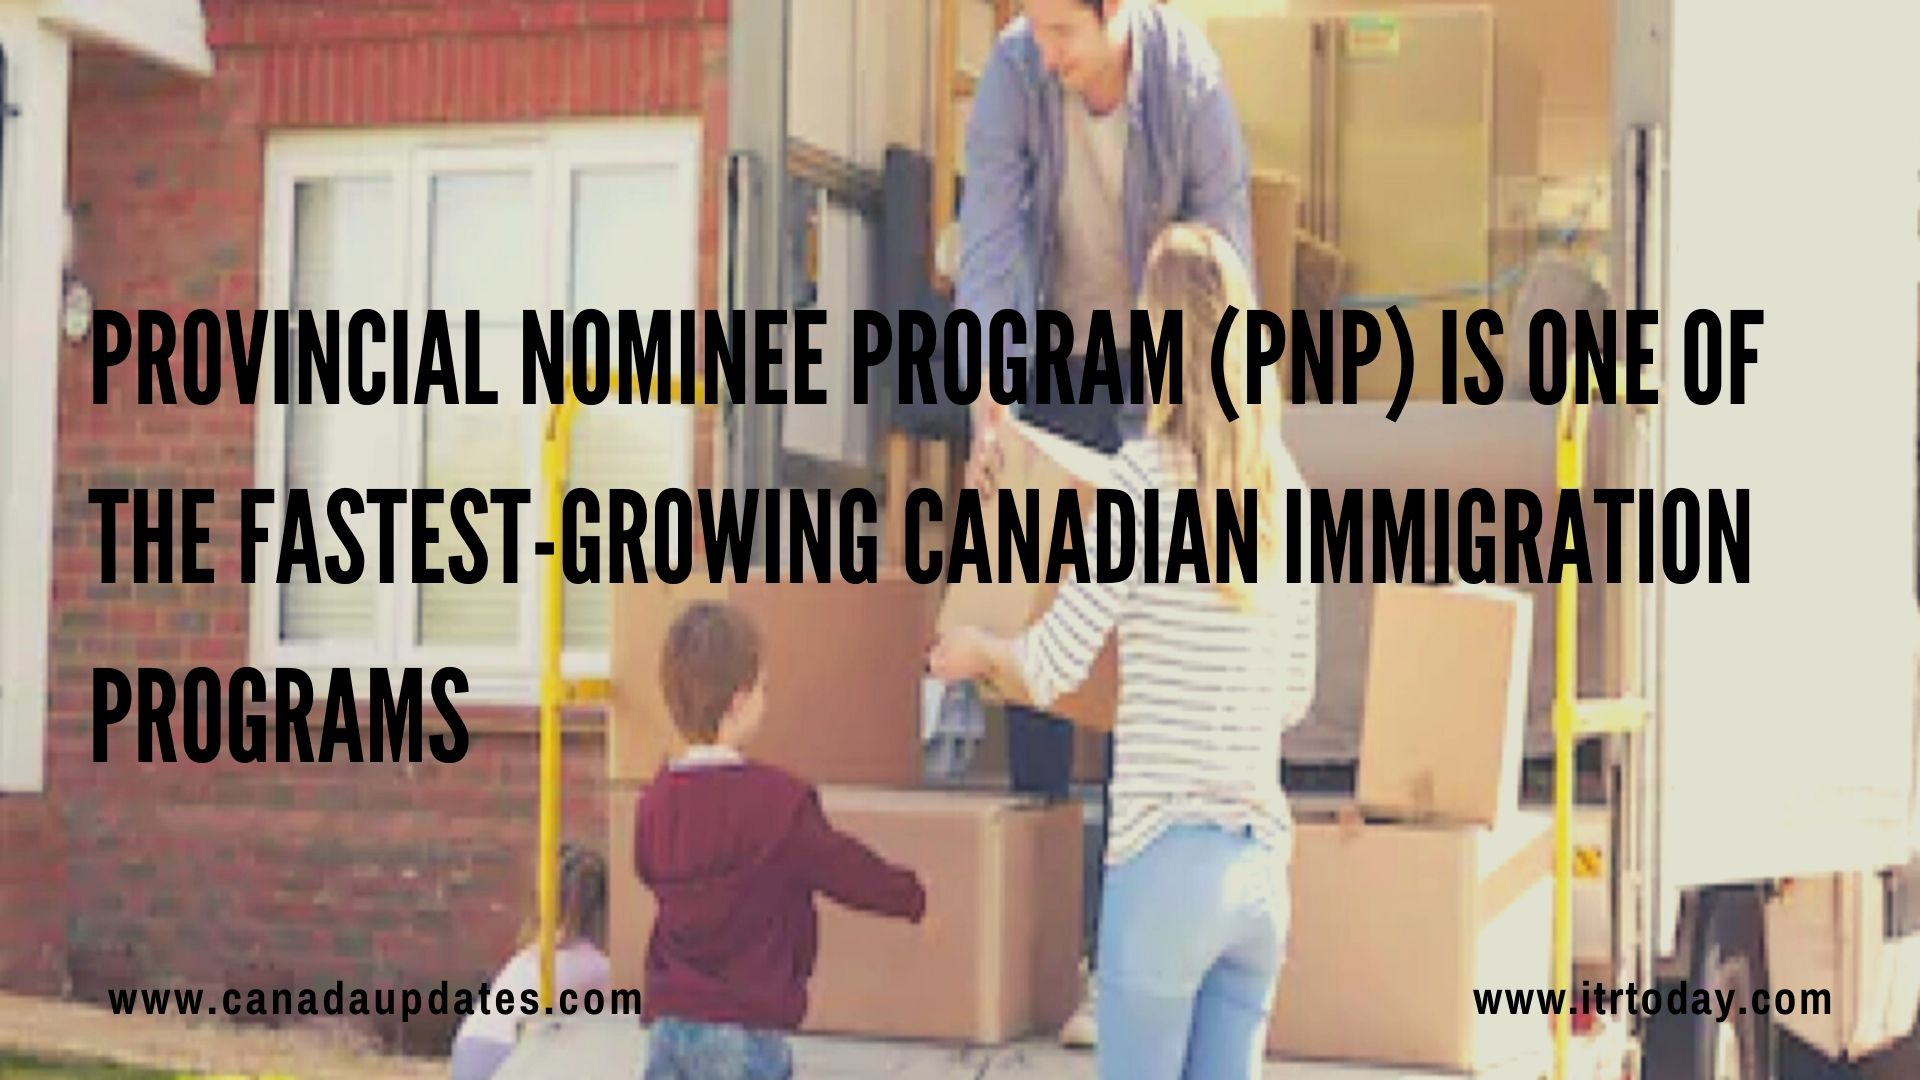 Implications of Moving to another Province after Immigrating on PNP1